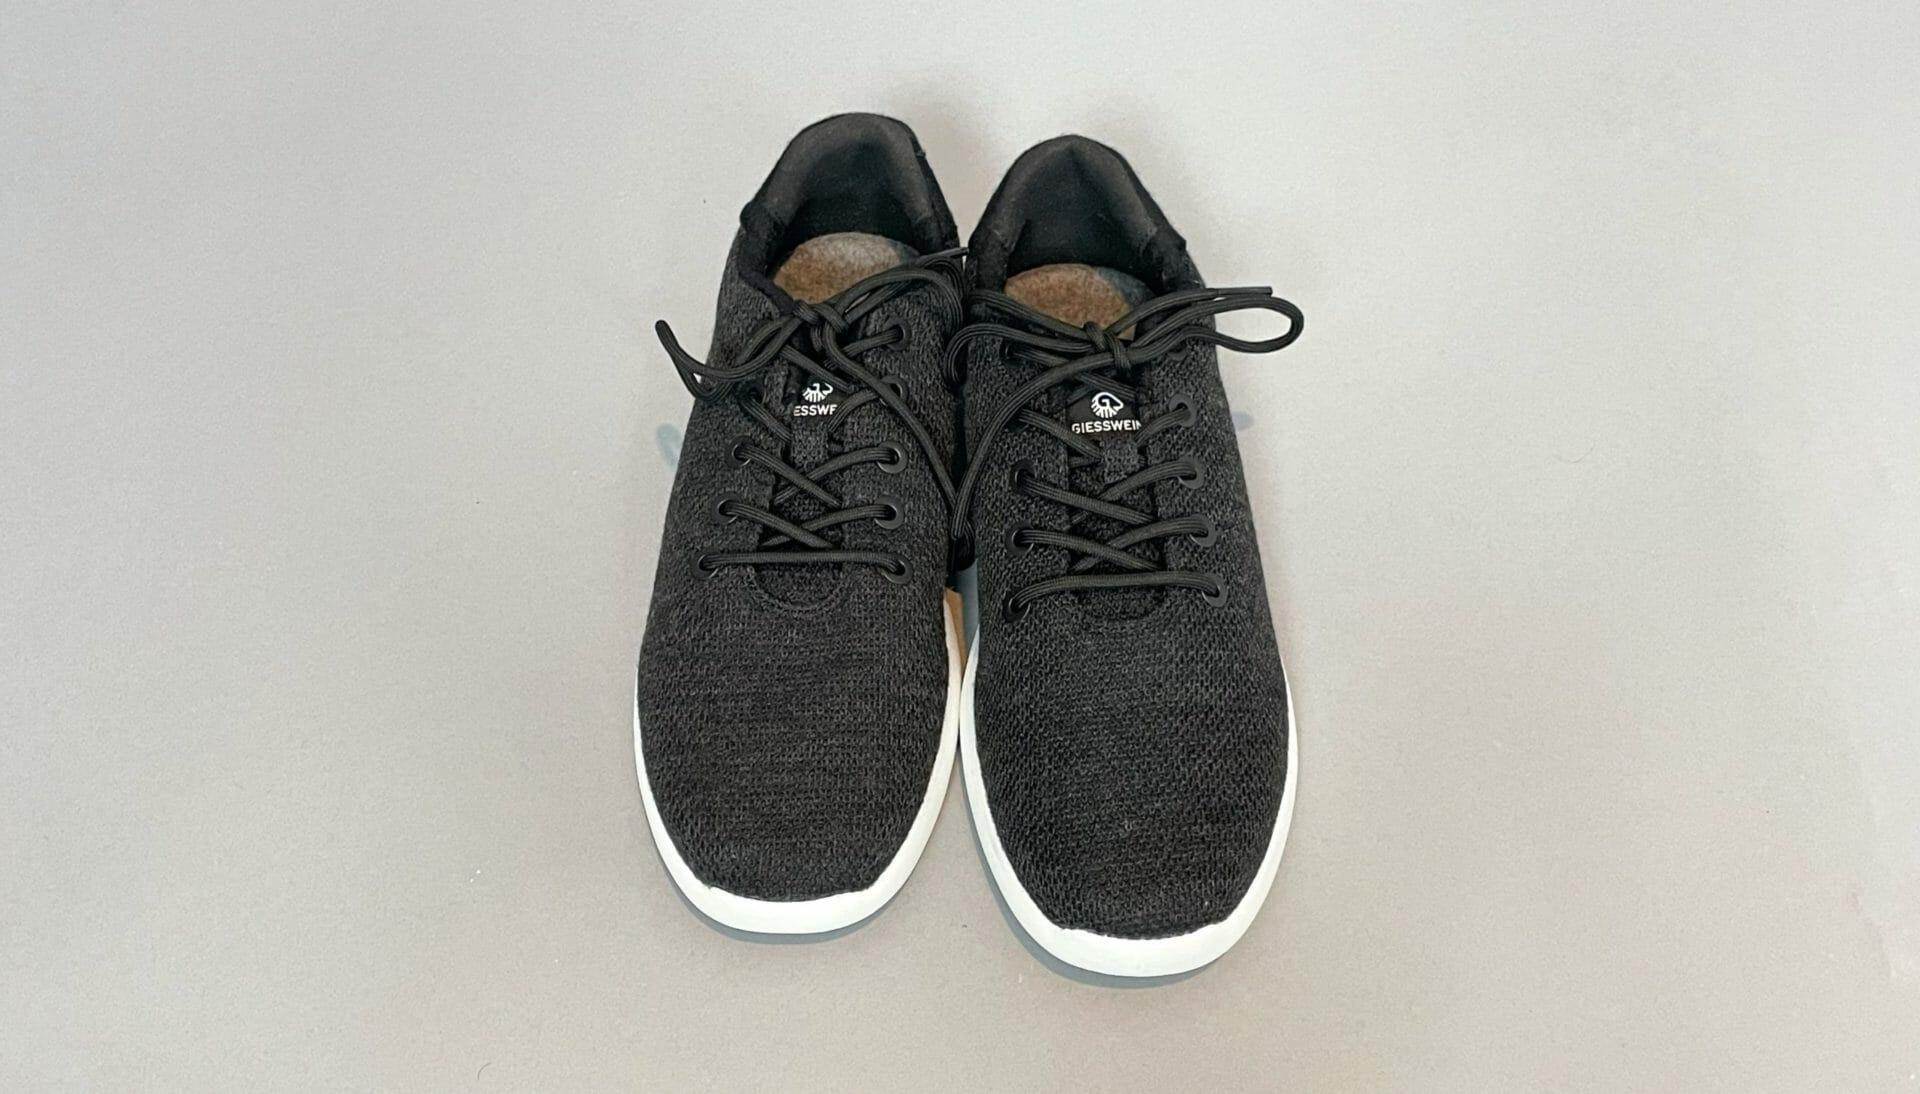 Giesswein wool knit shoe review - the answer to stinky, hot summer feet? 2